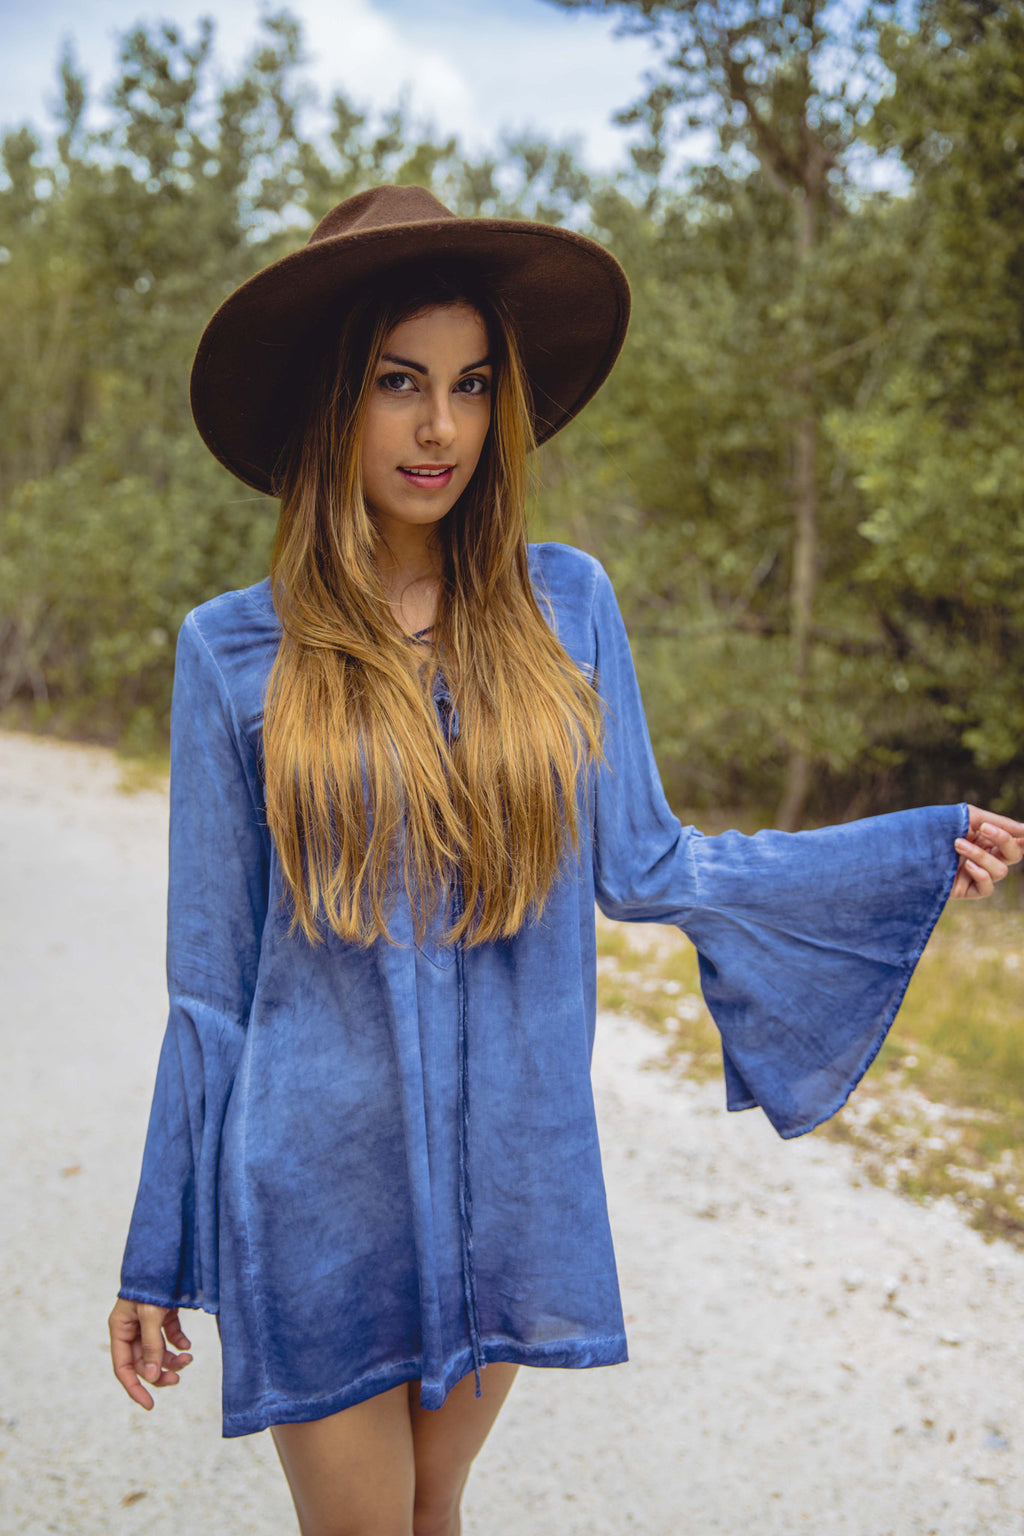 Lace Up Tunic Dress in Indigo Denim - Boho Bum Island Clothing Swimwear Bohemian Boho west palm beach  Miami florida  fall fashion spring fashion online shopping ootd blogger style swim boutique